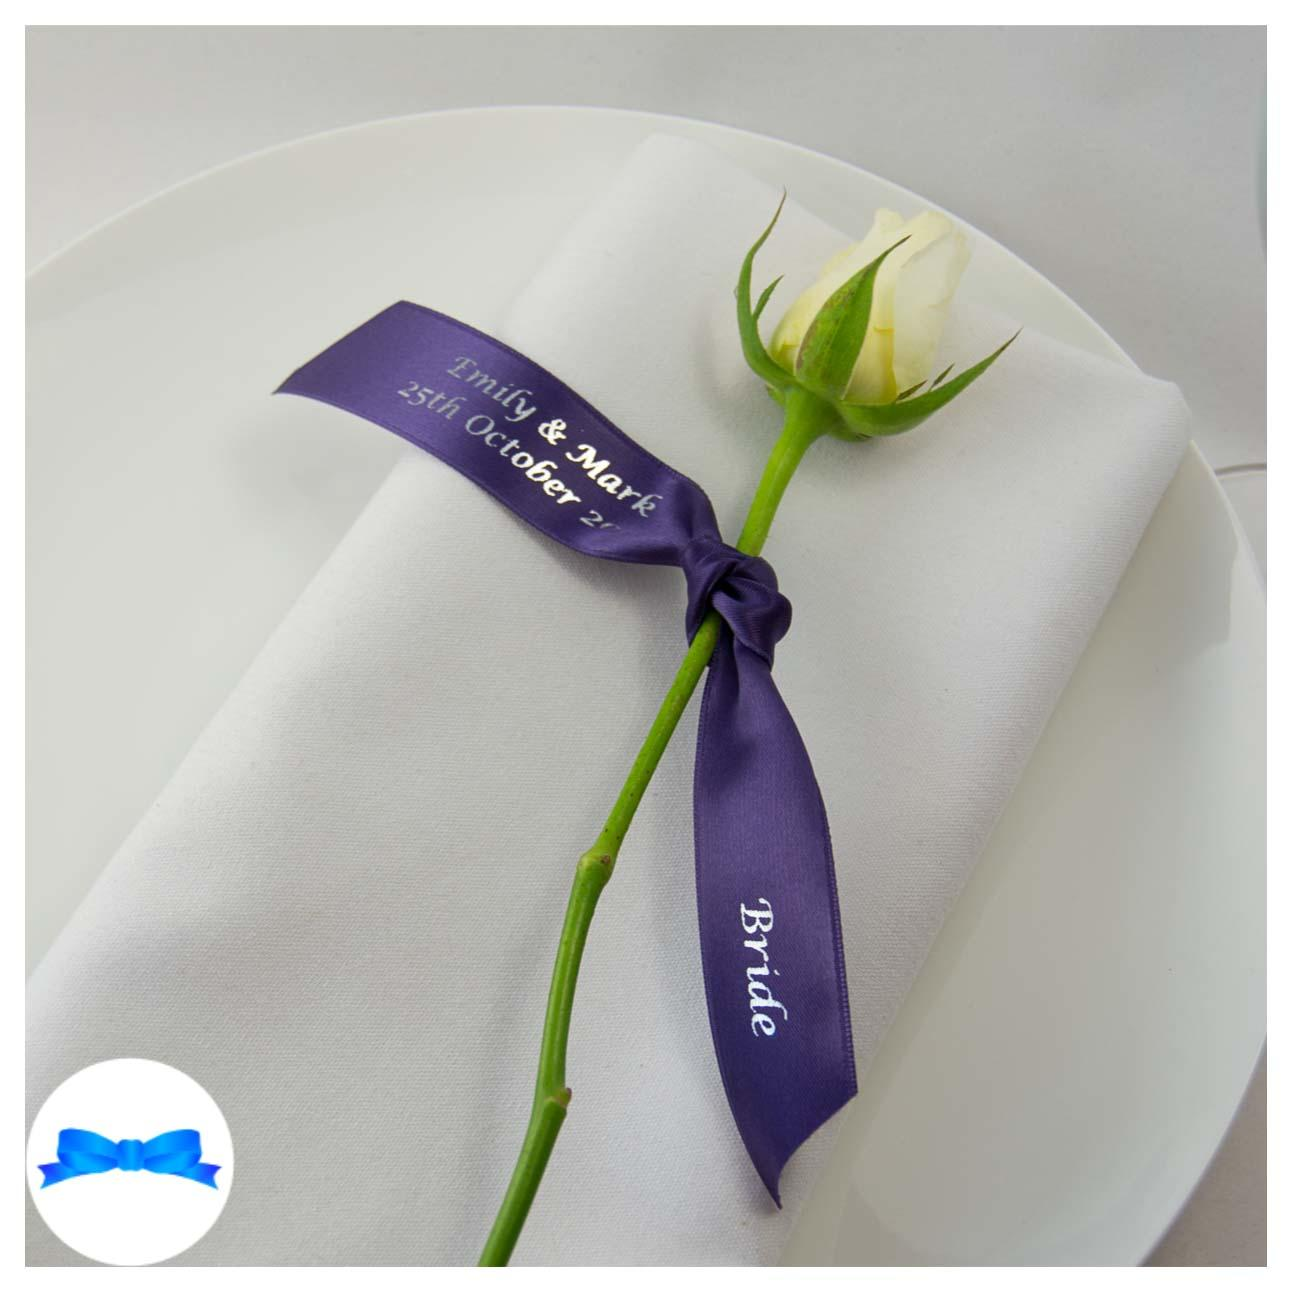 Printed ribbon for Place setting. Regal purple  ribbon and silver print